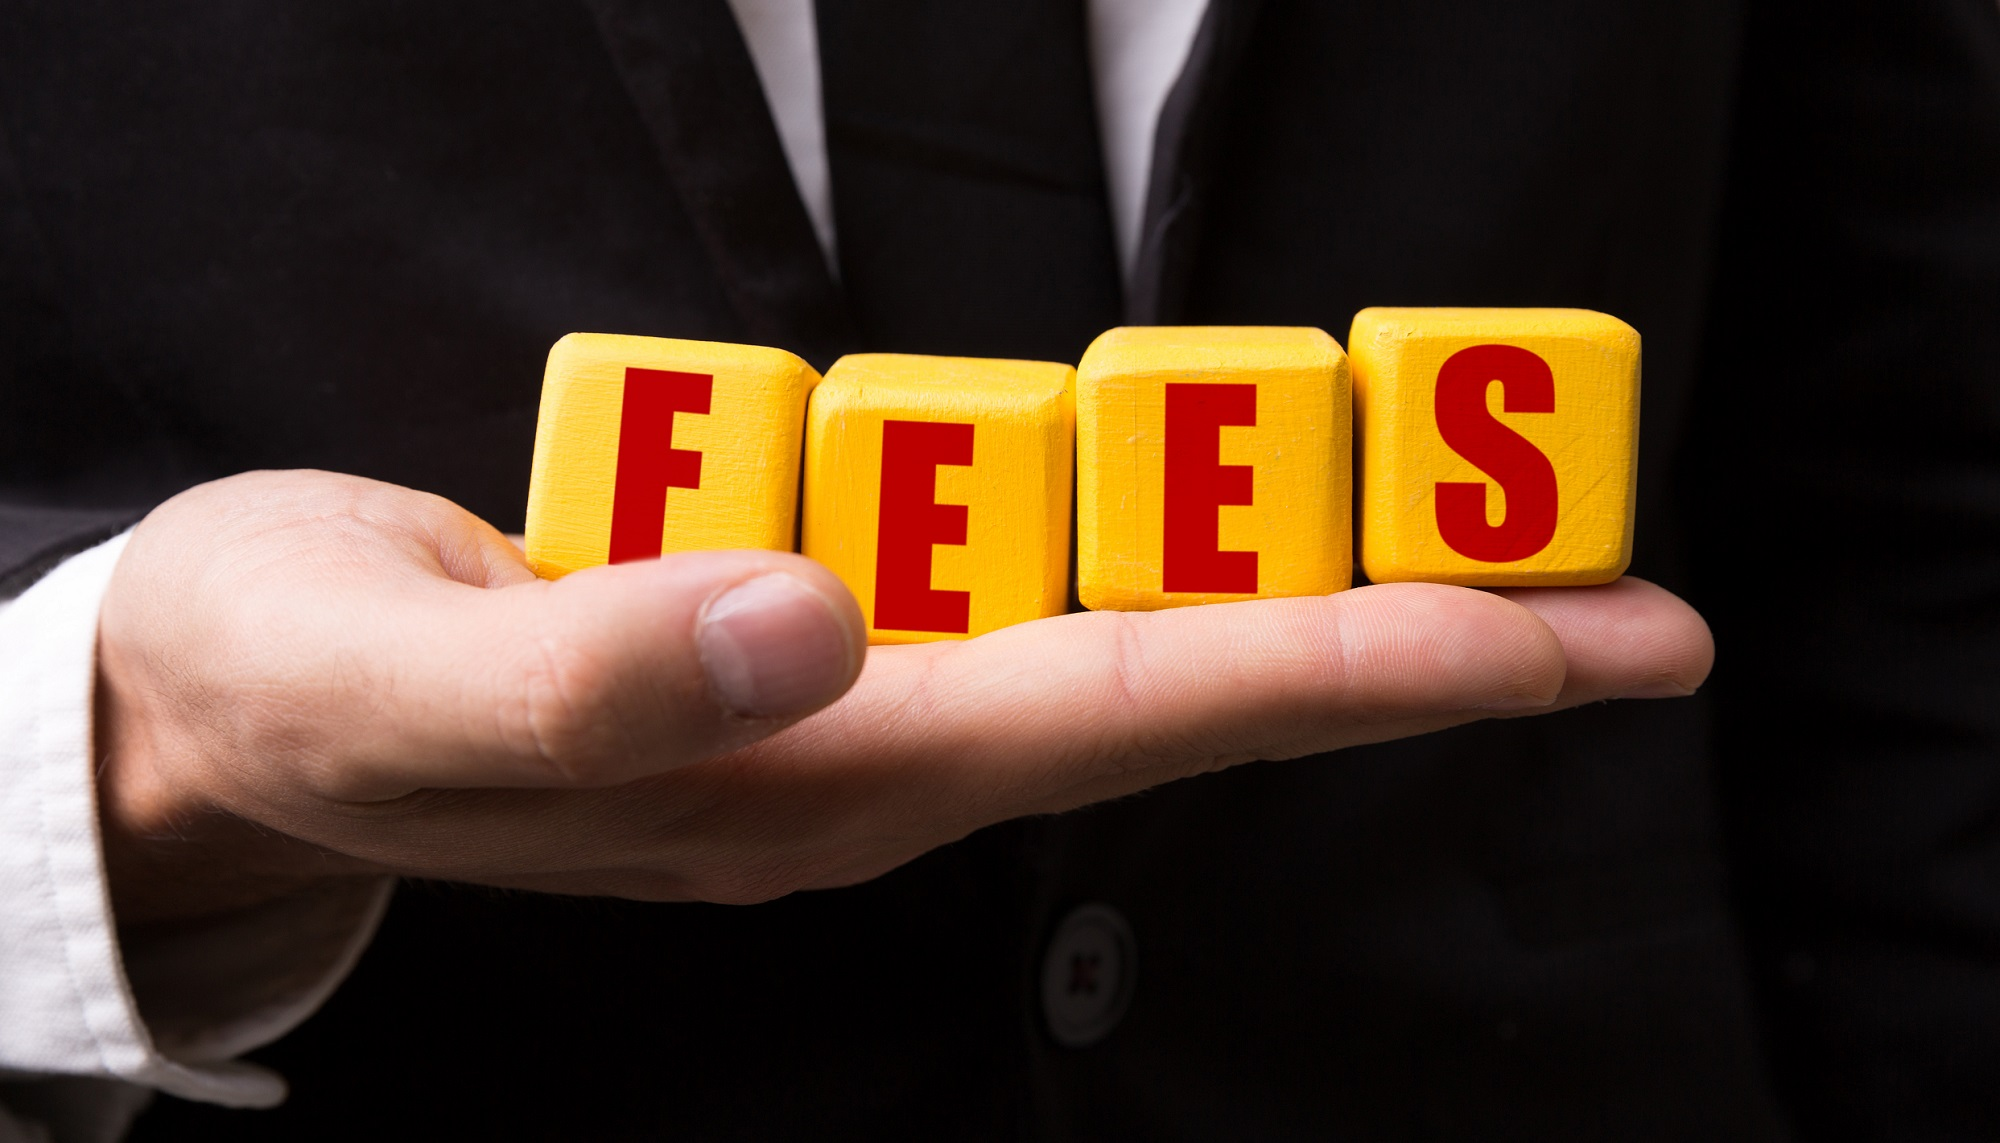 Tenant fees ban guide: Answers for landlords and tenants